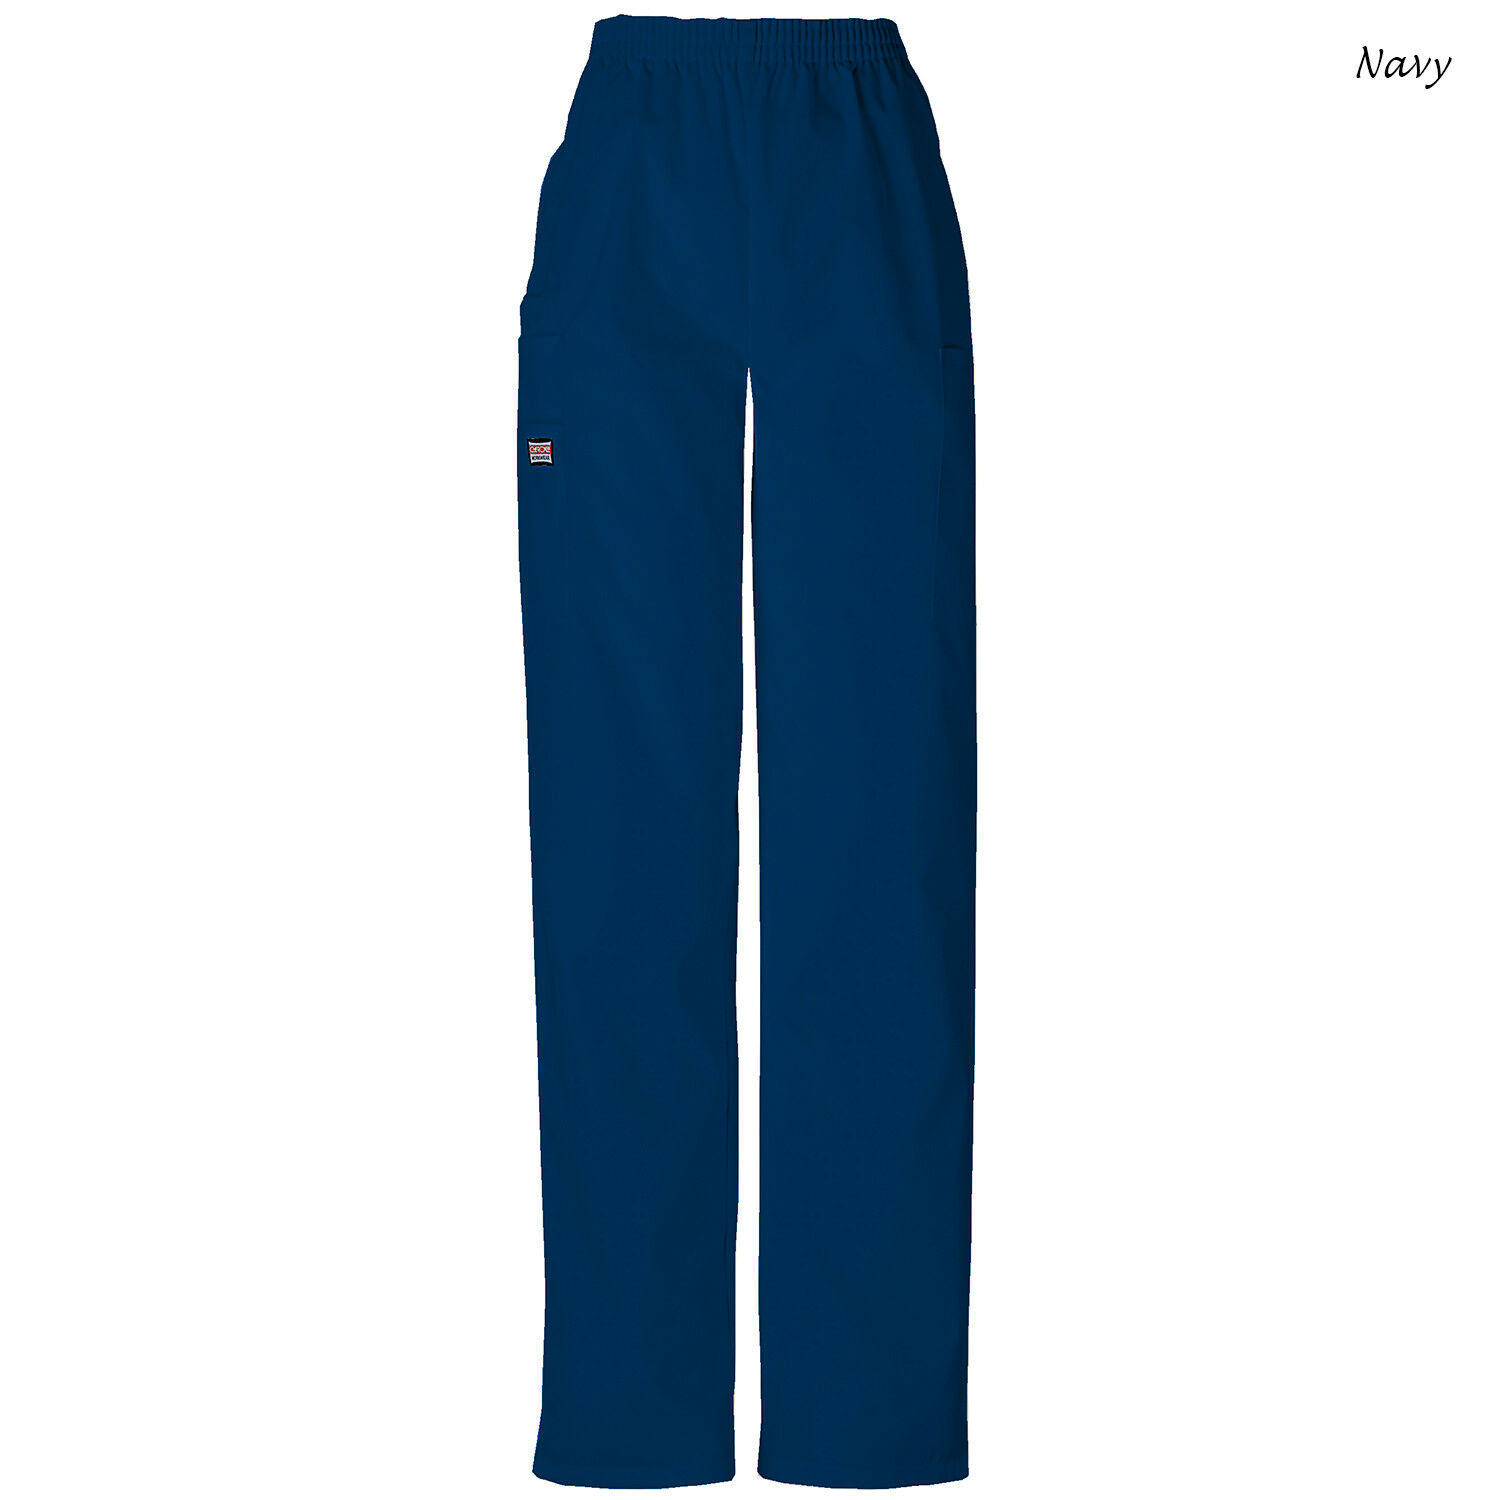 7374a8e4274 Buy Petite Cherokee Workwear Pull on Cargo Pant 4200 - Ships Navy ...